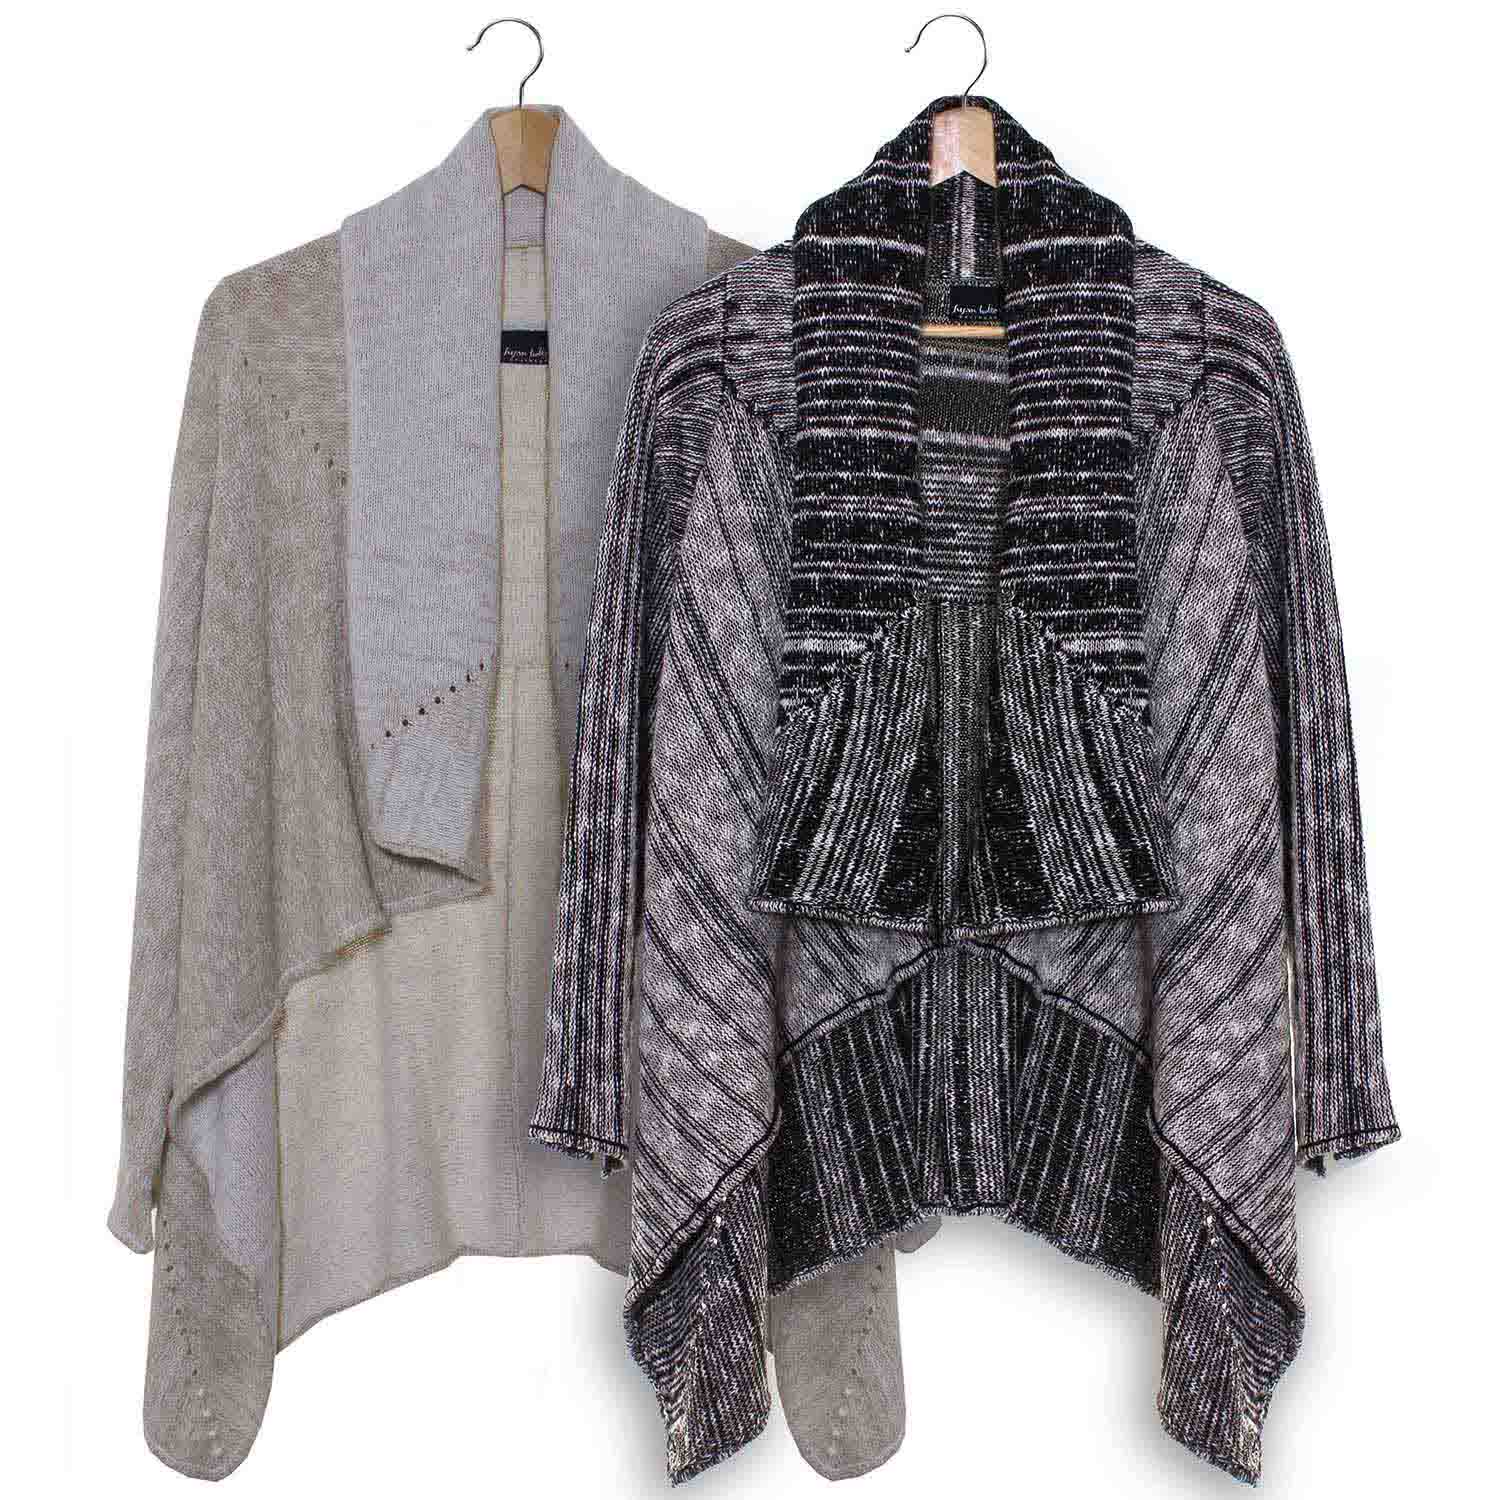 Susan-Holton-Knitwear-Swing-Wrap-Jacket-Black-&-Off-white.jpg